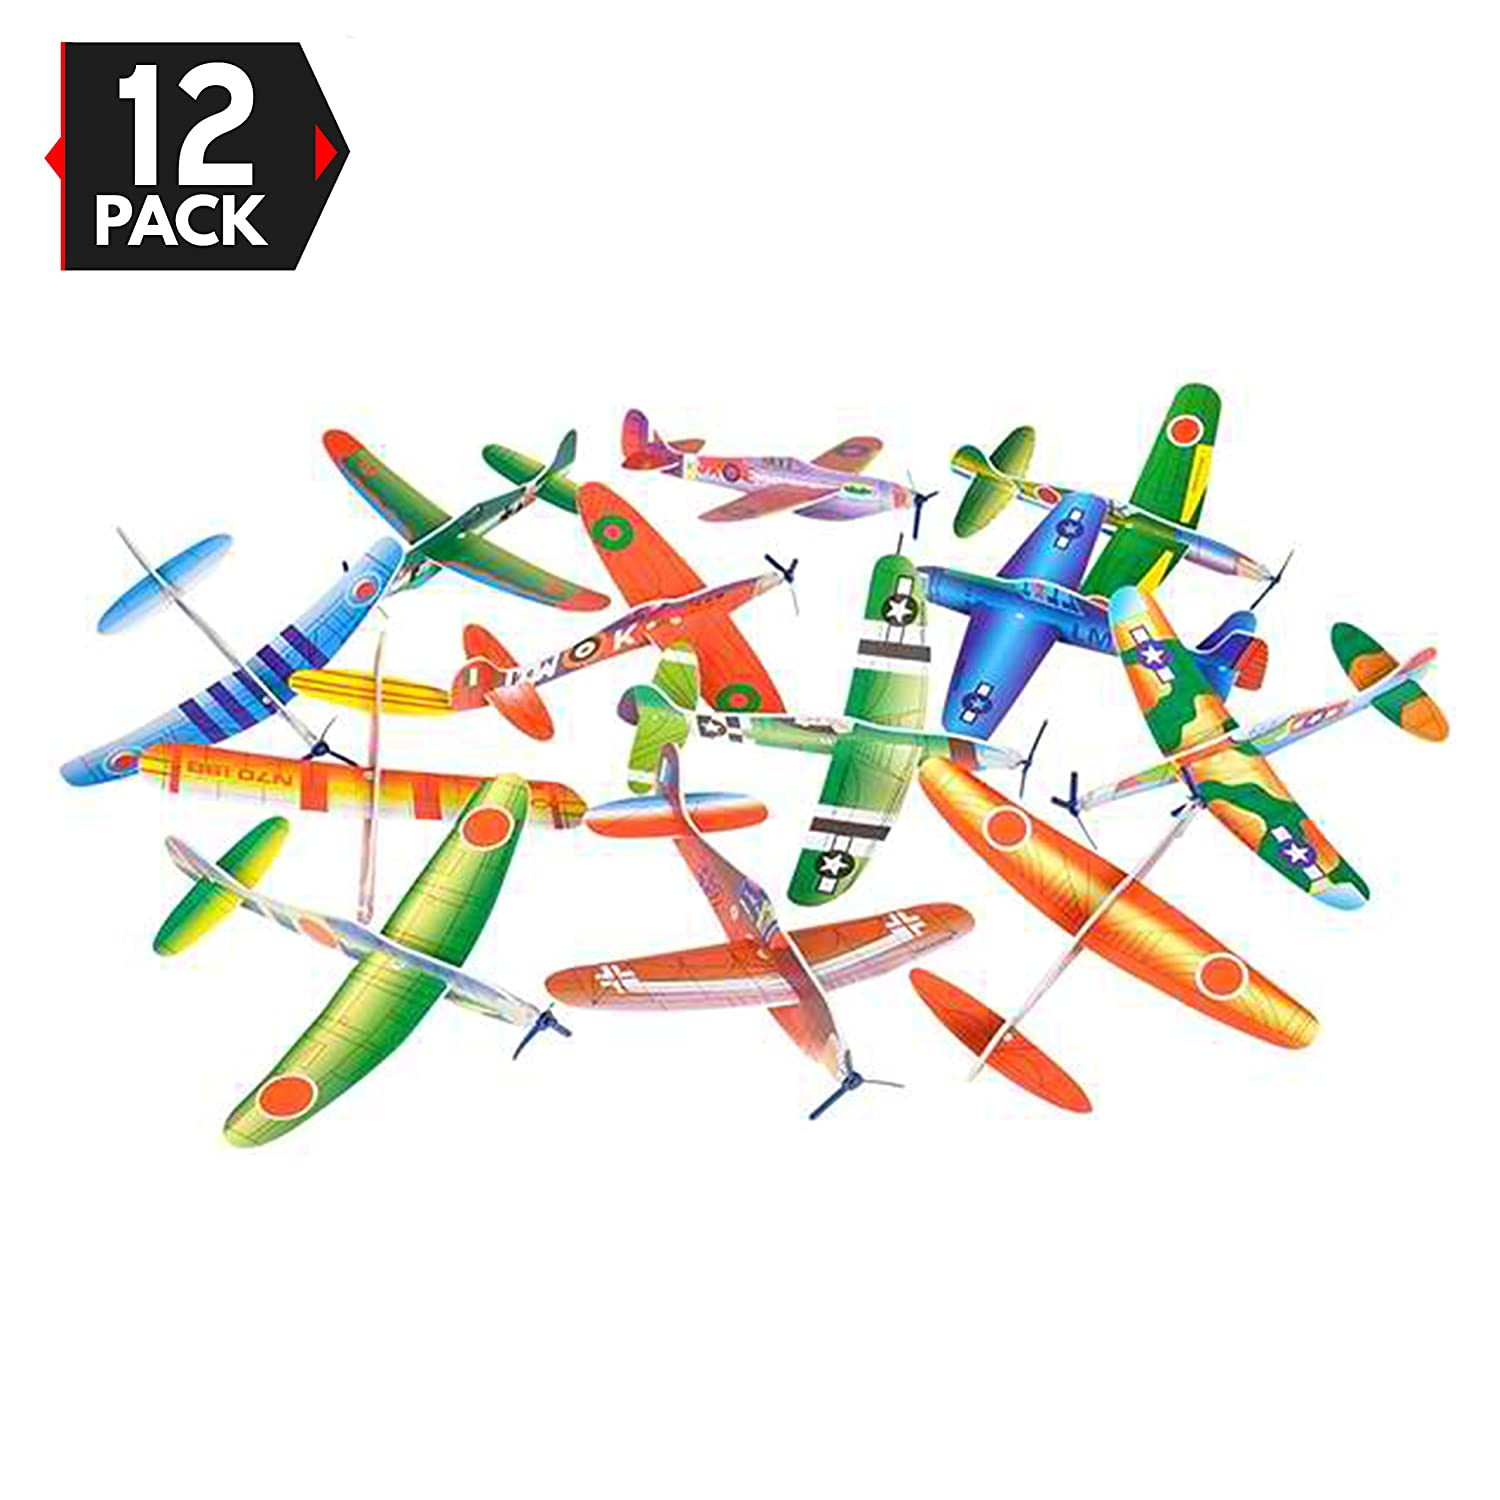 12 Pack 8 Inch Glider Planes - Birthday Party Favor Plane, Great Prize, Handout / Giveaway Glider, Flying Models, One Dozen Big Mo's Toys